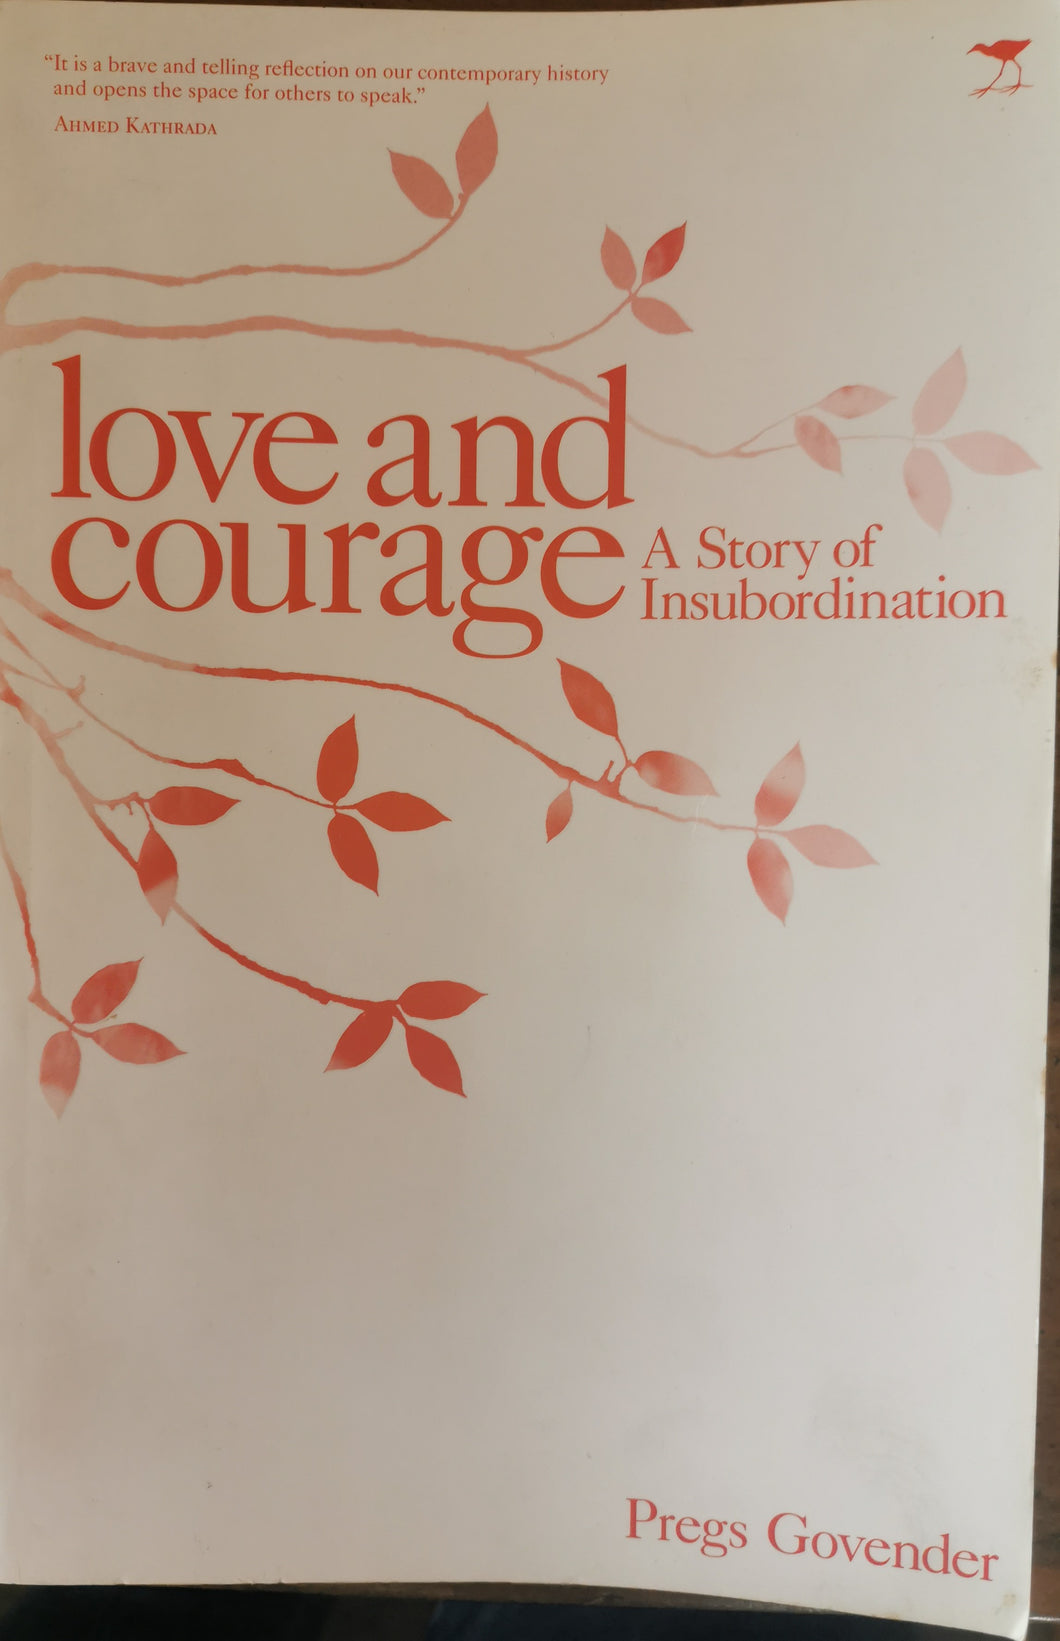 Love and Courage: A Story of Insubordination - Pregs Govender